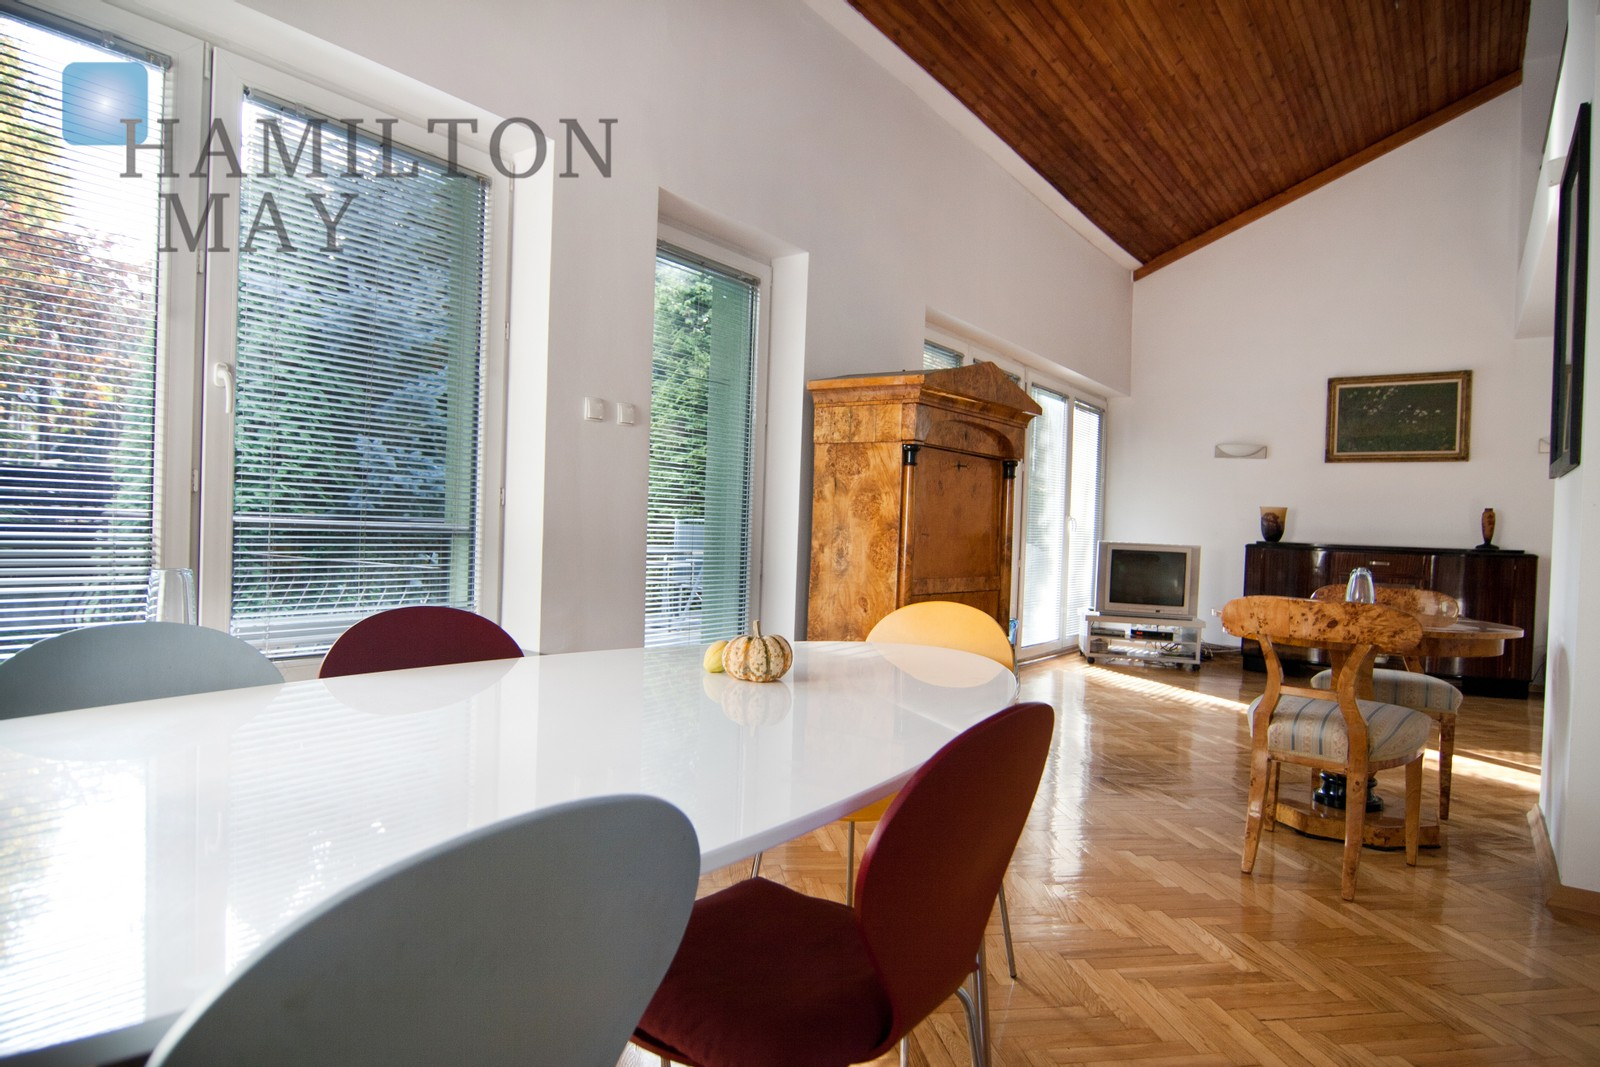 Spacious house with terrace and sauna in Wola Justowska Krakow for rent